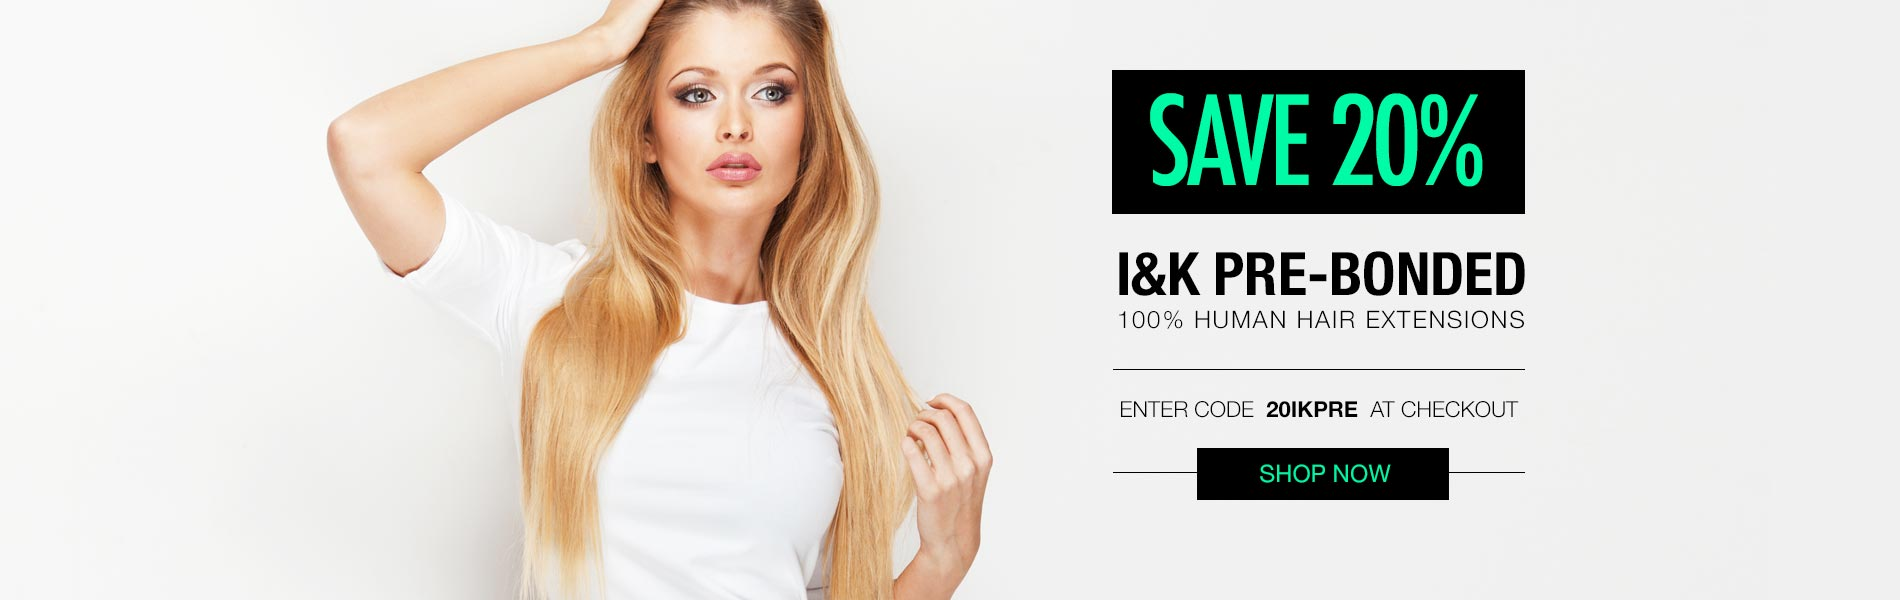 SAVE 20% on I&K Pre-Bonded